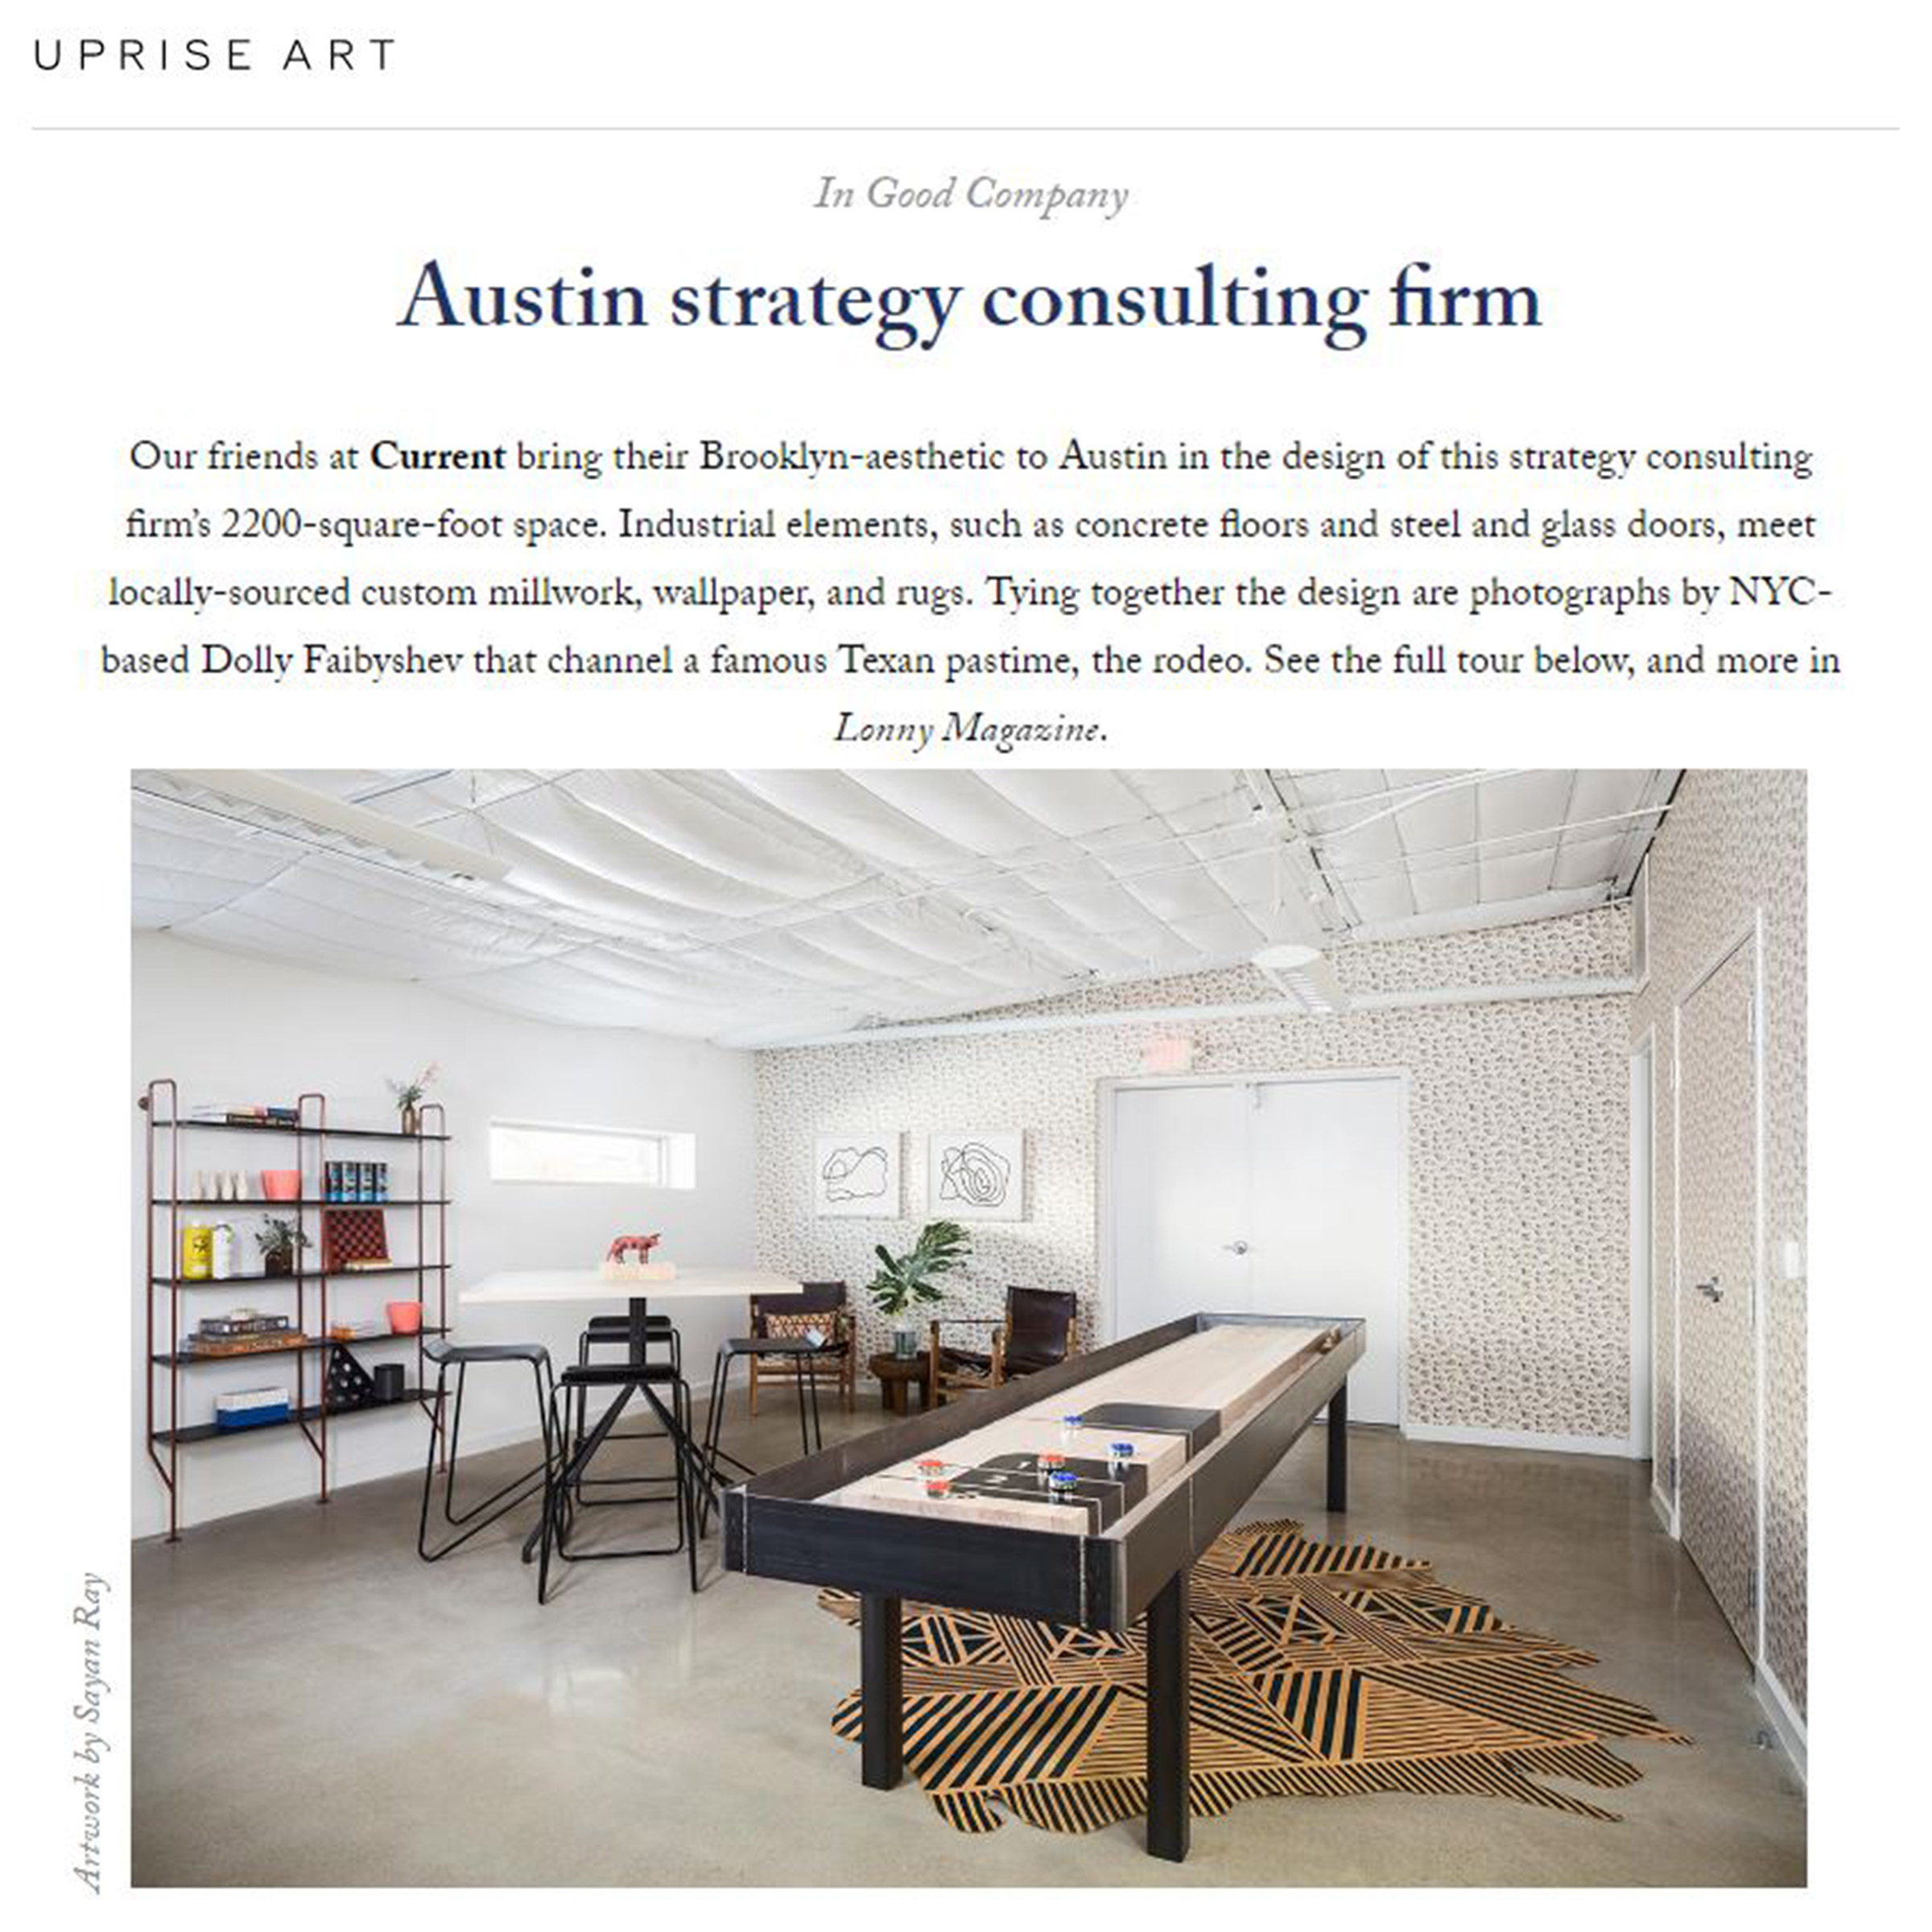 - uprise artMay, 2017                          Our friends at Currentbring their Brooklyn-aesthetic to Austin in the design of this strategy consulting firm's 2200-square-foot space. Industrial elements, such as concrete floors and steel and glass doors, meet locally-sourced custom millwork, wallpaper, and rugs...